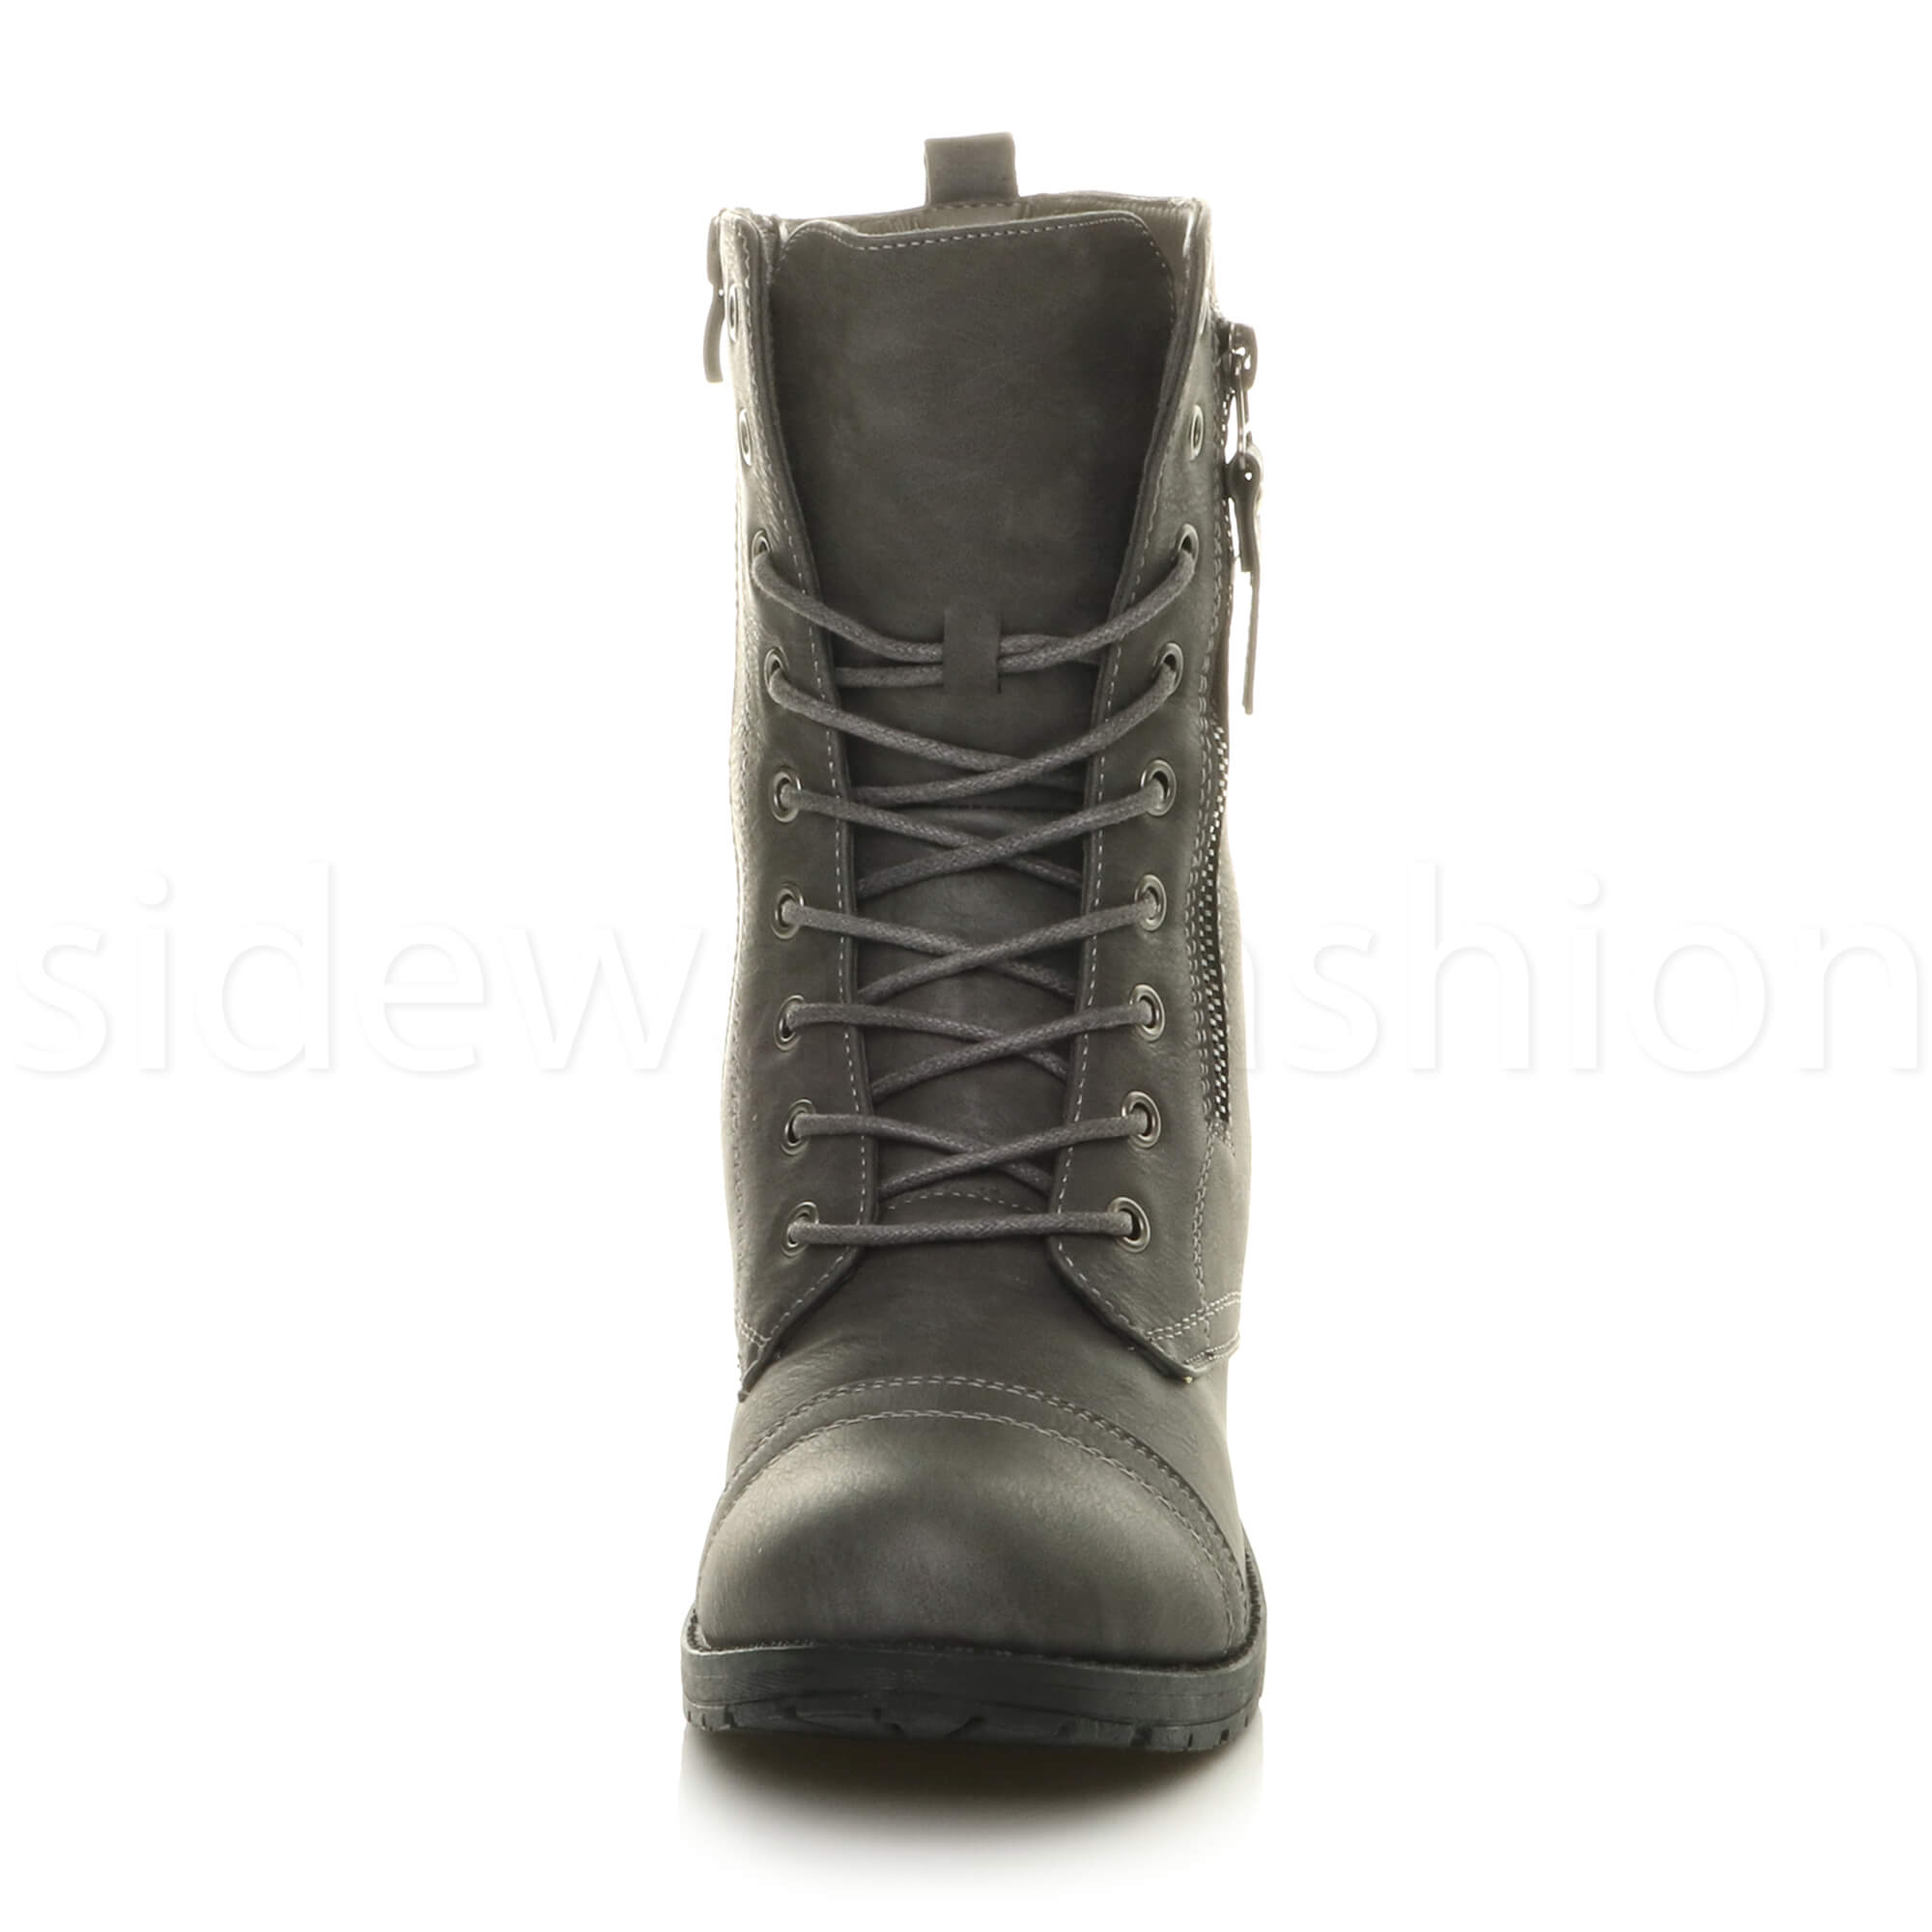 Womens-ladies-low-heel-flat-lace-up-zip-combat-biker-military-ankle-boots-size thumbnail 55